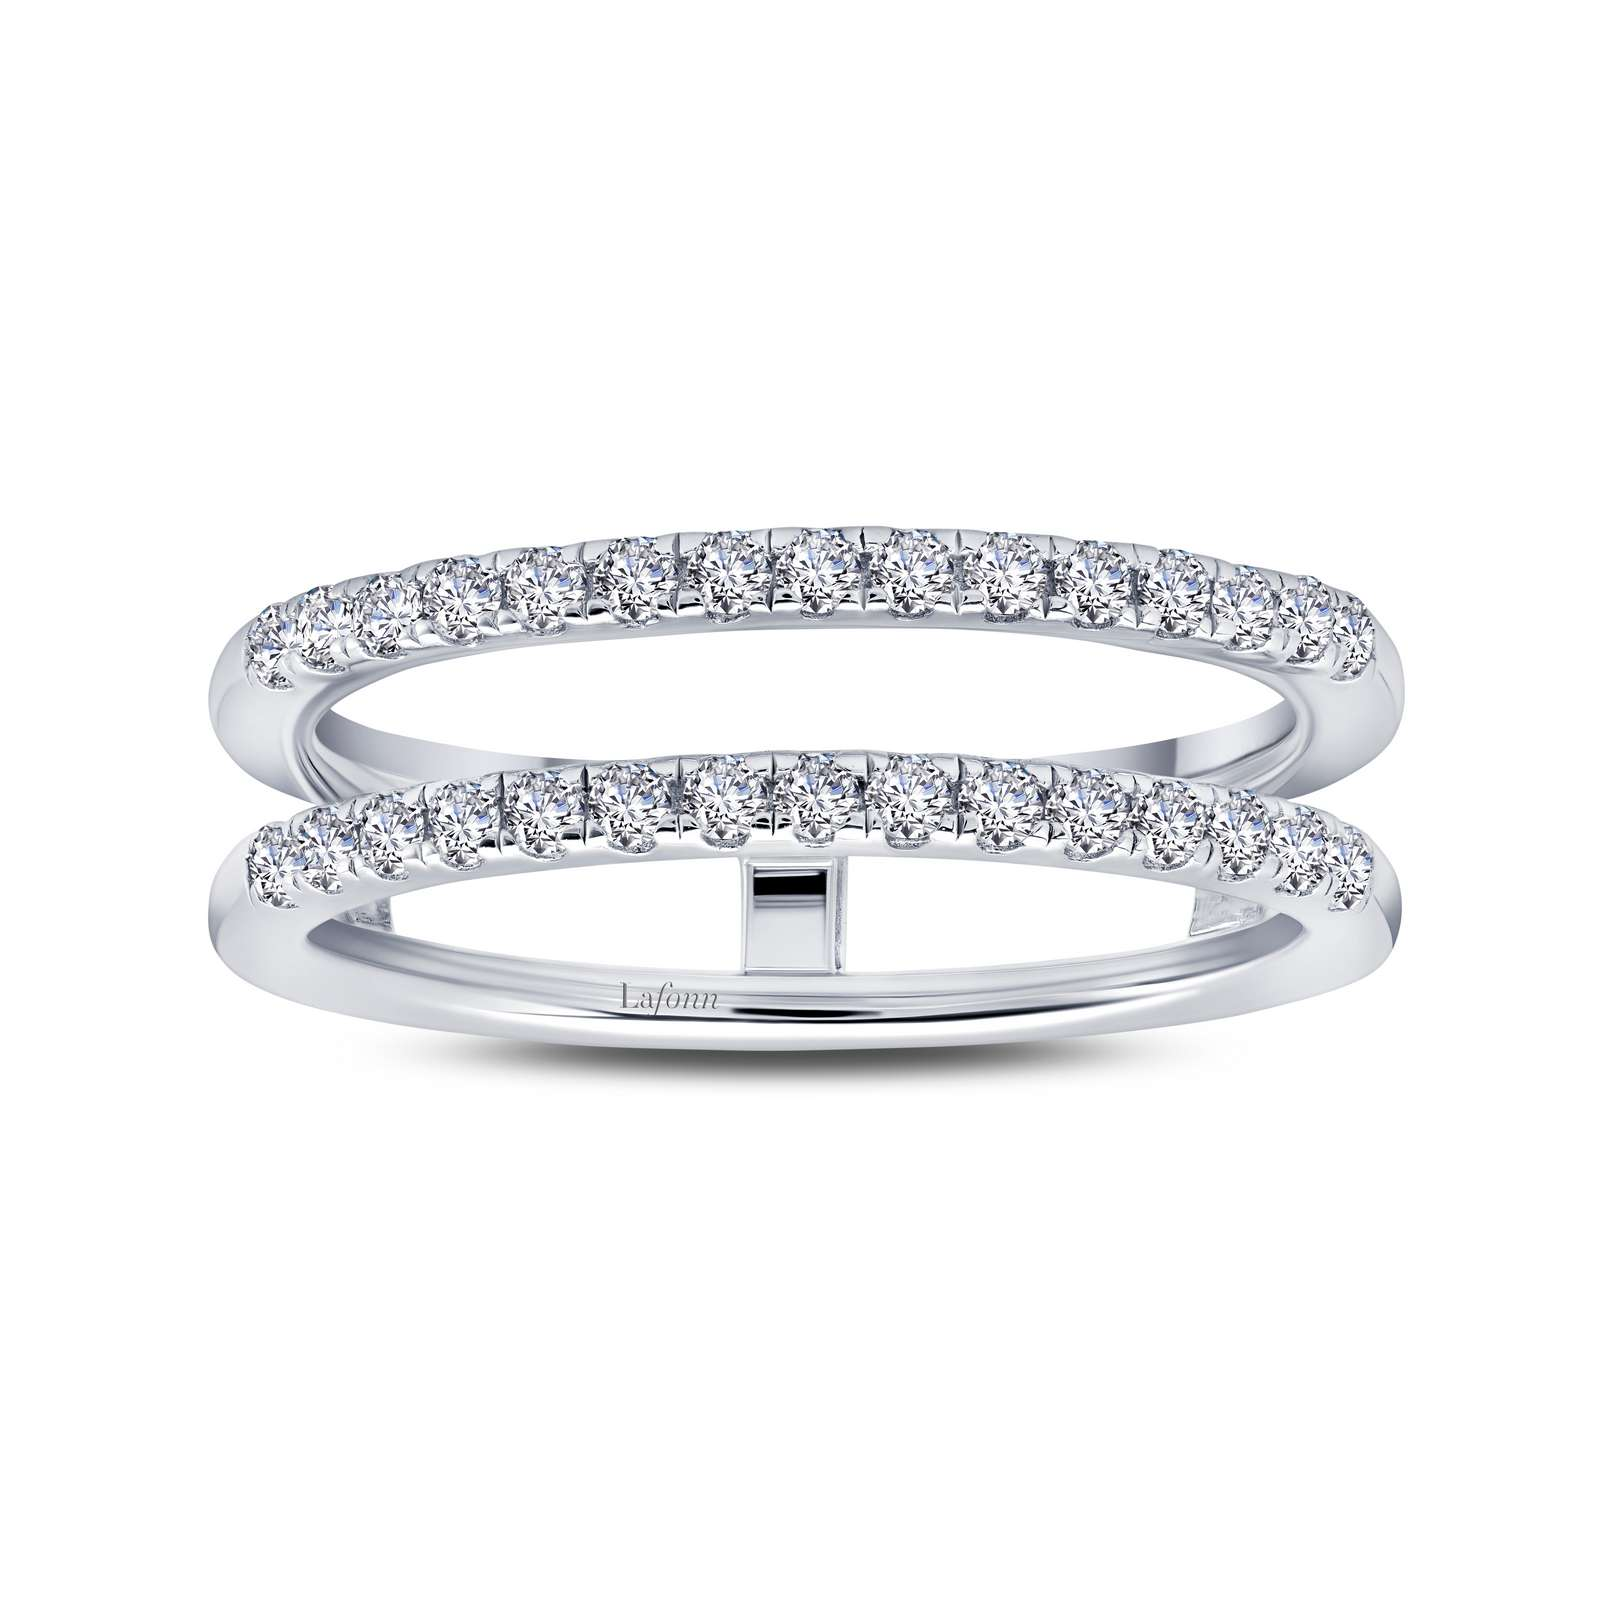 Classic Simulated Diamond Platinum Ring - A versatile addition to your collection. Wear this ring enhancer with an engagement ring or a band. This ring enhancer is set with Lafonn's signature Lassaire simulated diamonds in sterling silver bonded with platinum.